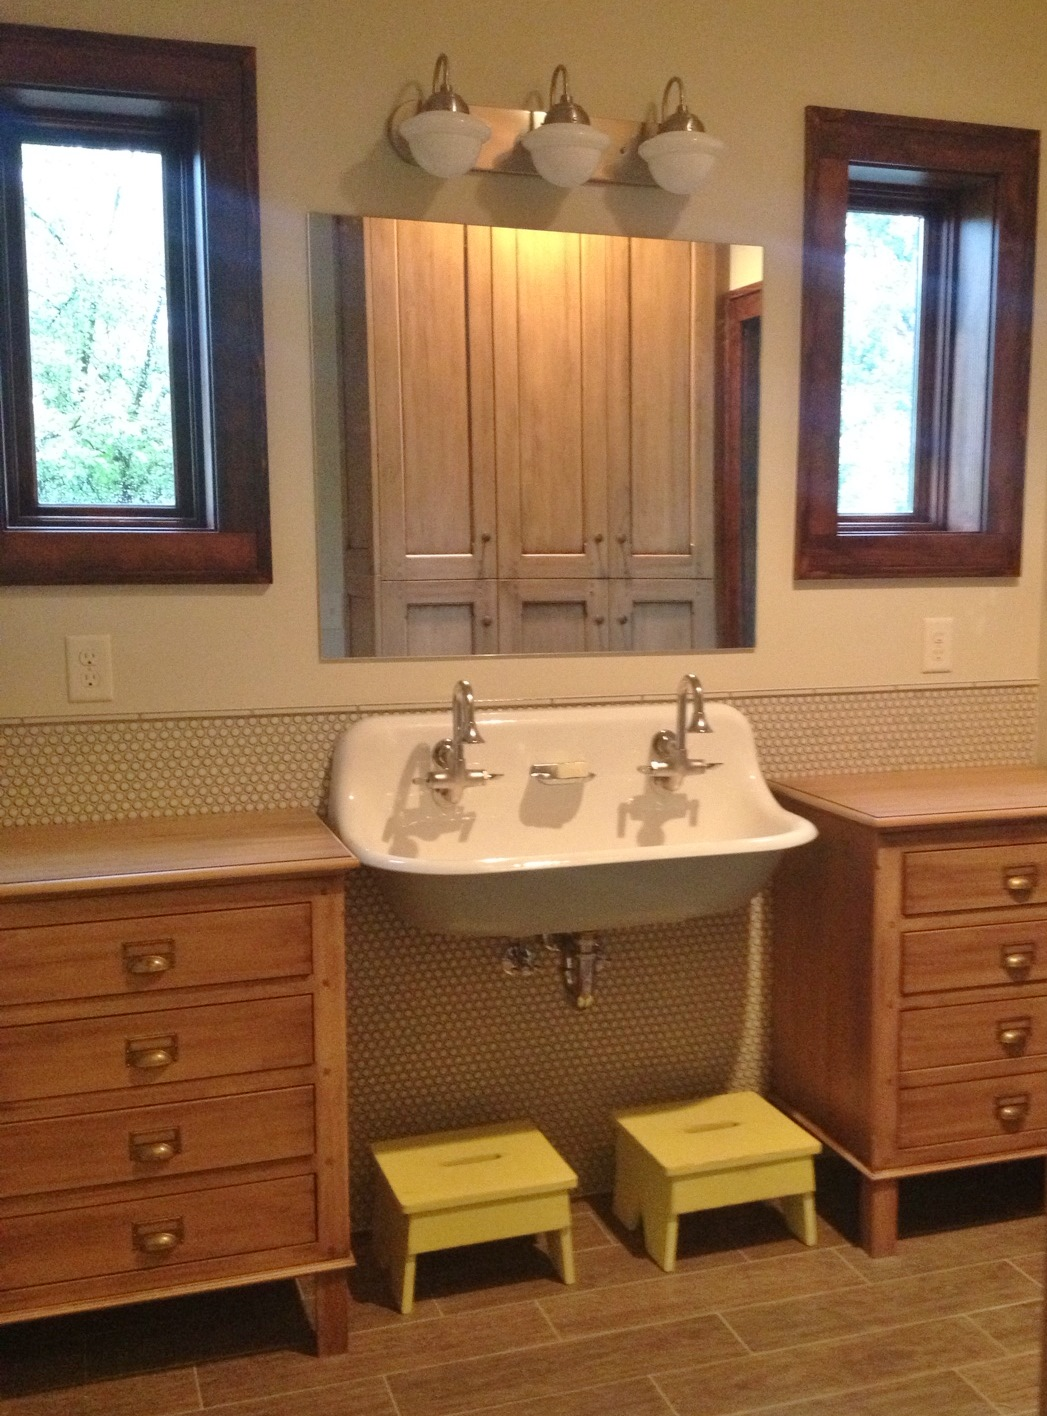 Exceptionnel Featured Customer | Vintage Vanity Lights Add Retro Spin To Kidsu0027 Bath  Remodel